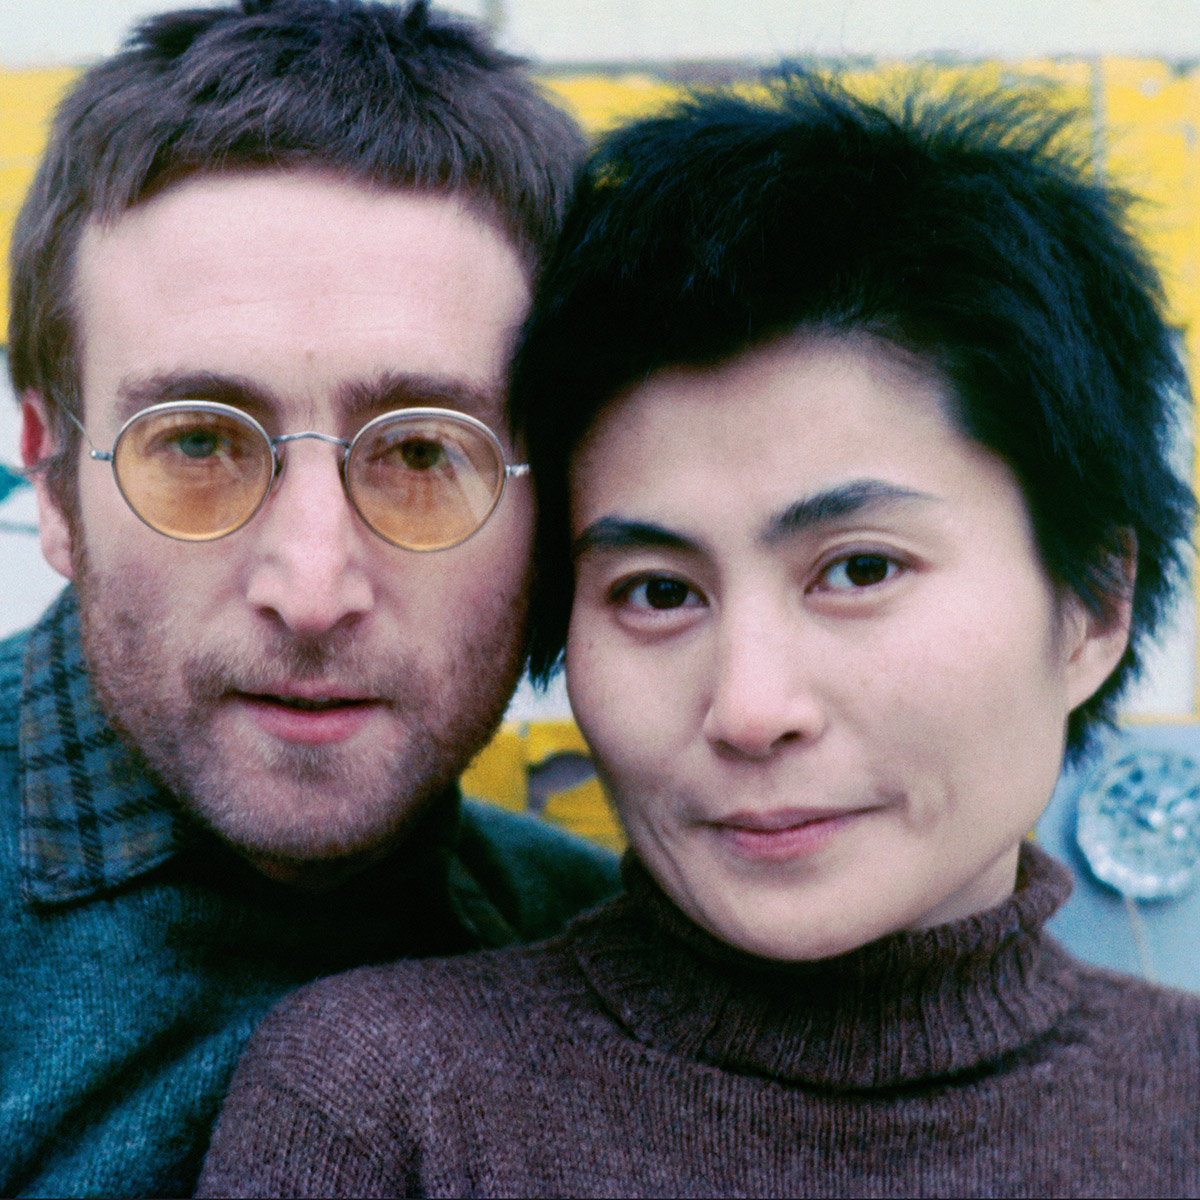 New Music: John Lennon/Plastic Ono Band – The Ultimate Collection 2 CD